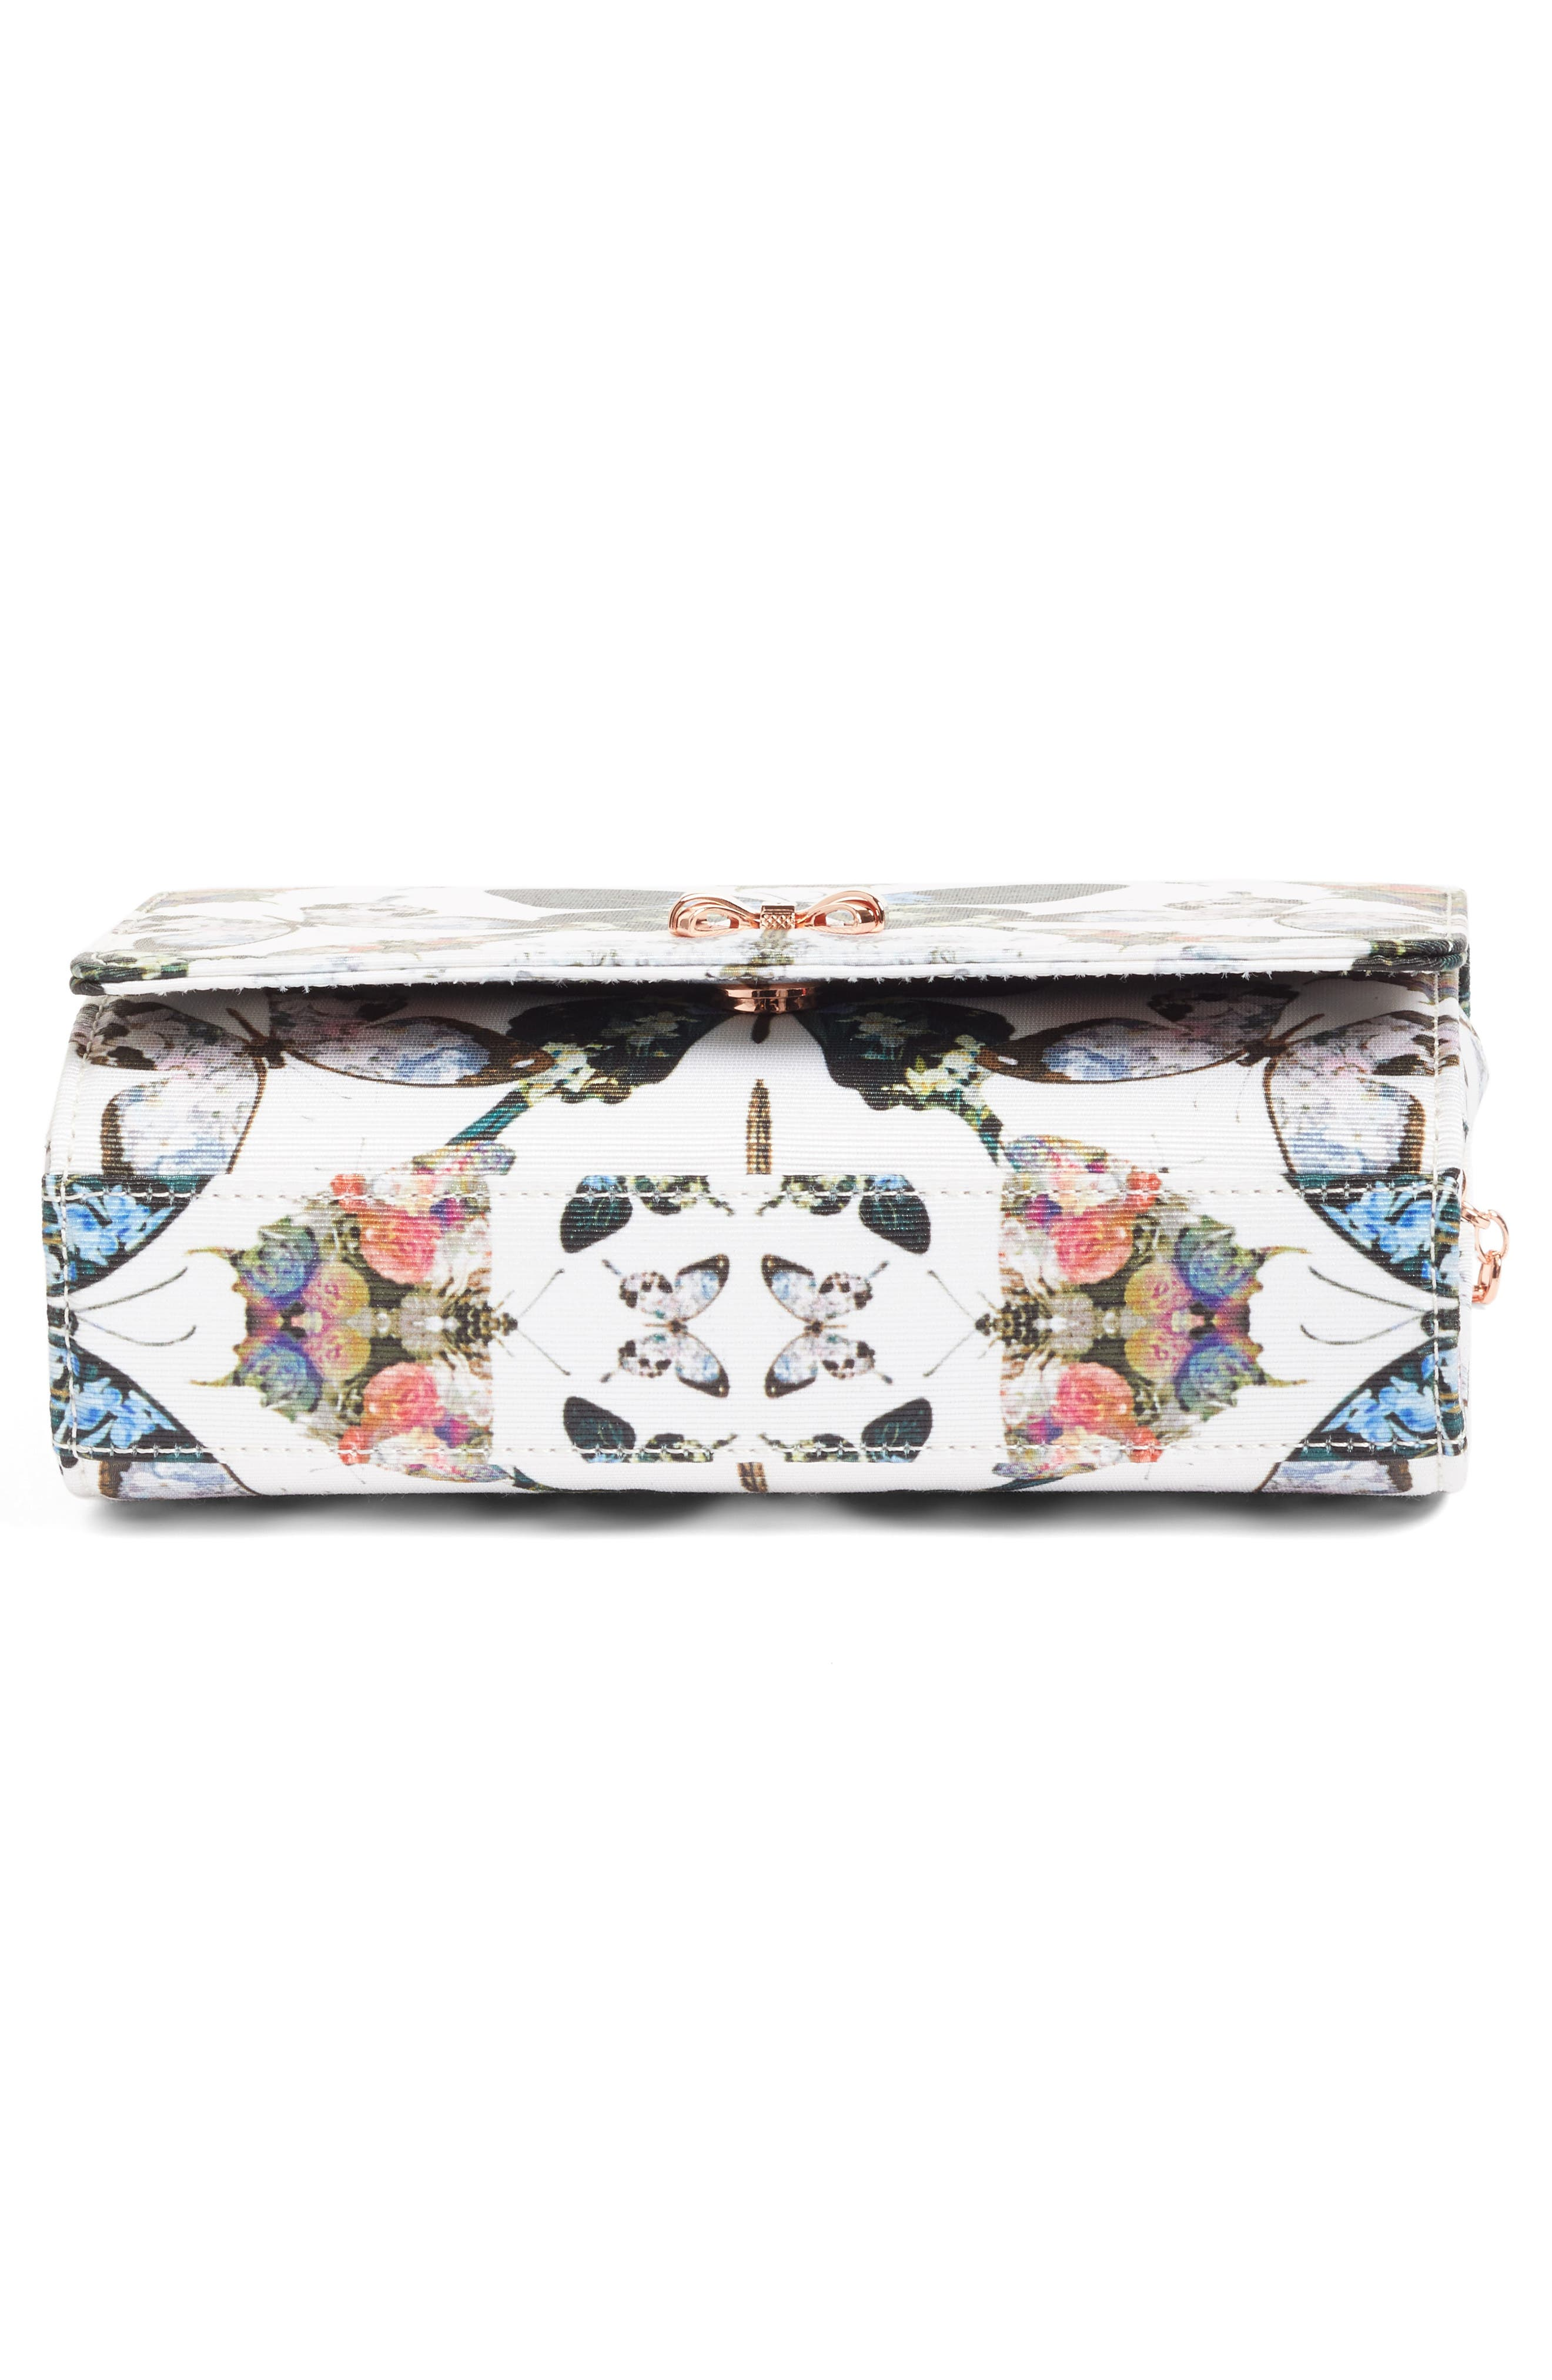 Strisa Butterfly Print Clutch,                             Alternate thumbnail 6, color,                             900